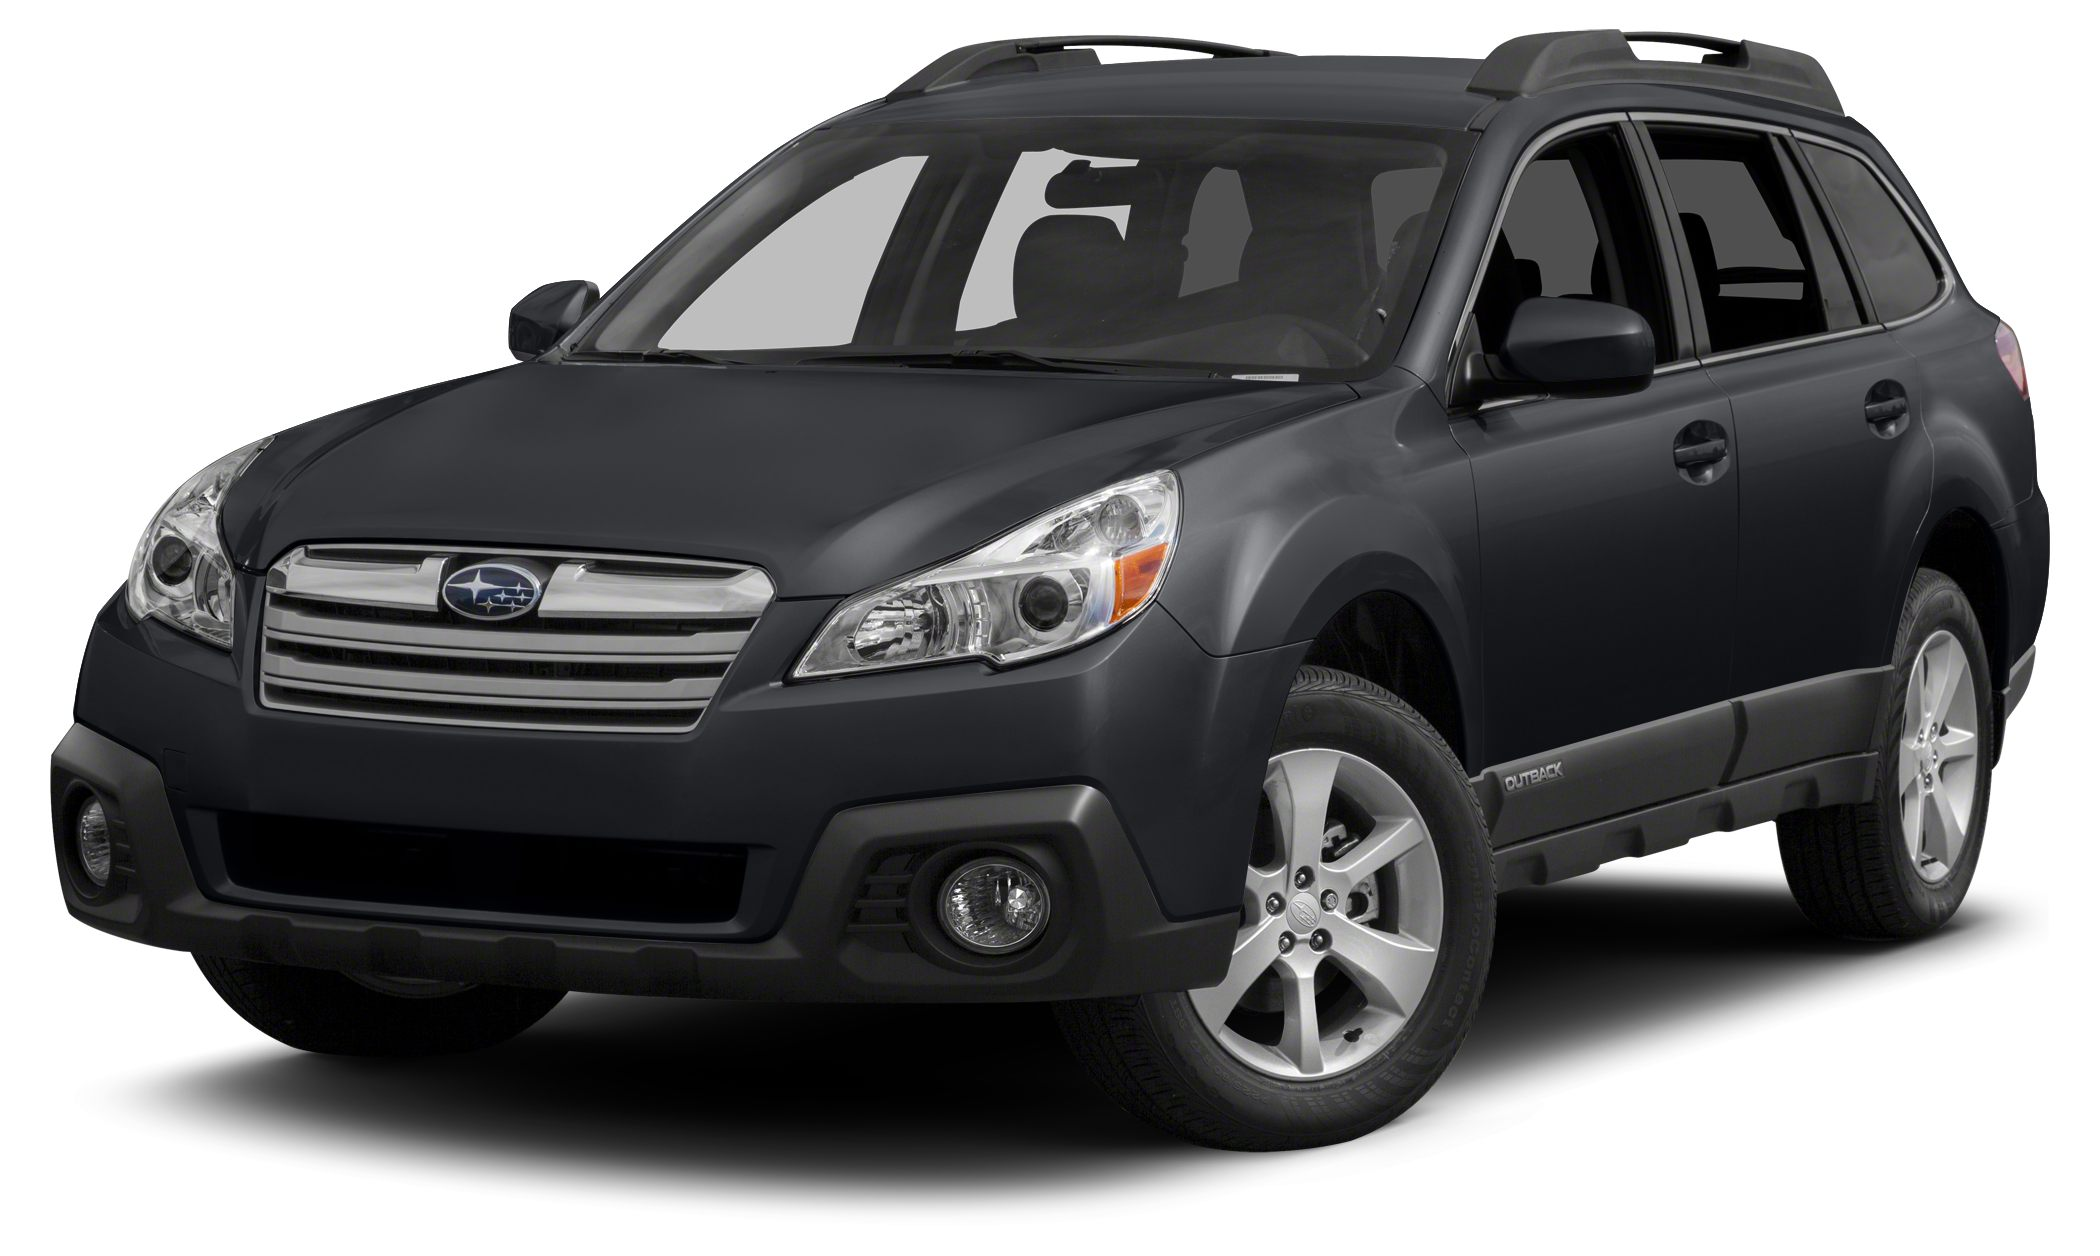 2013 Subaru Outback 25i Limited PRICED TO MOVE 1200 below Kelley Blue Book EPA 30 MPG Hwy24